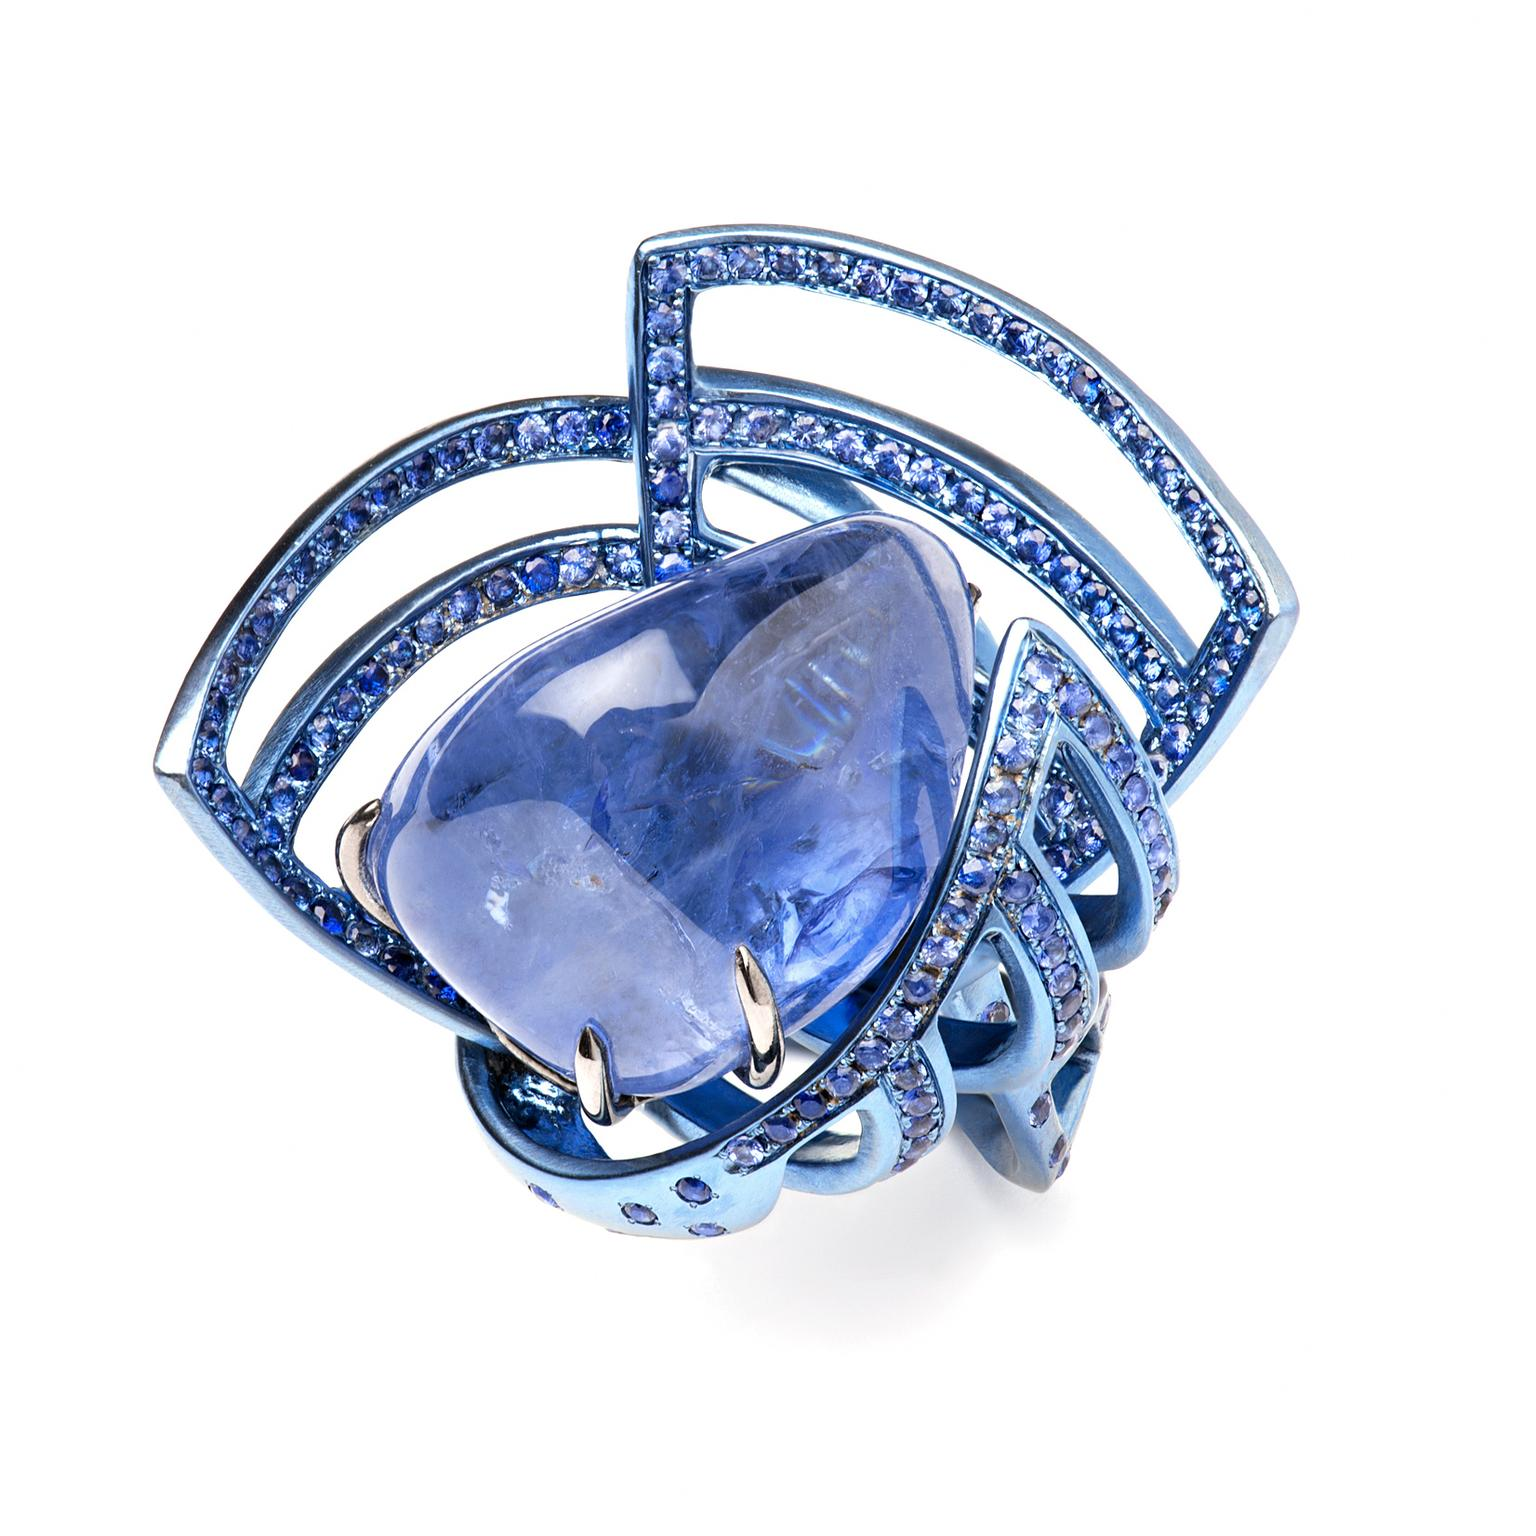 Suzanne Syz Star Wars Treasures sapphire ring in blue titanium